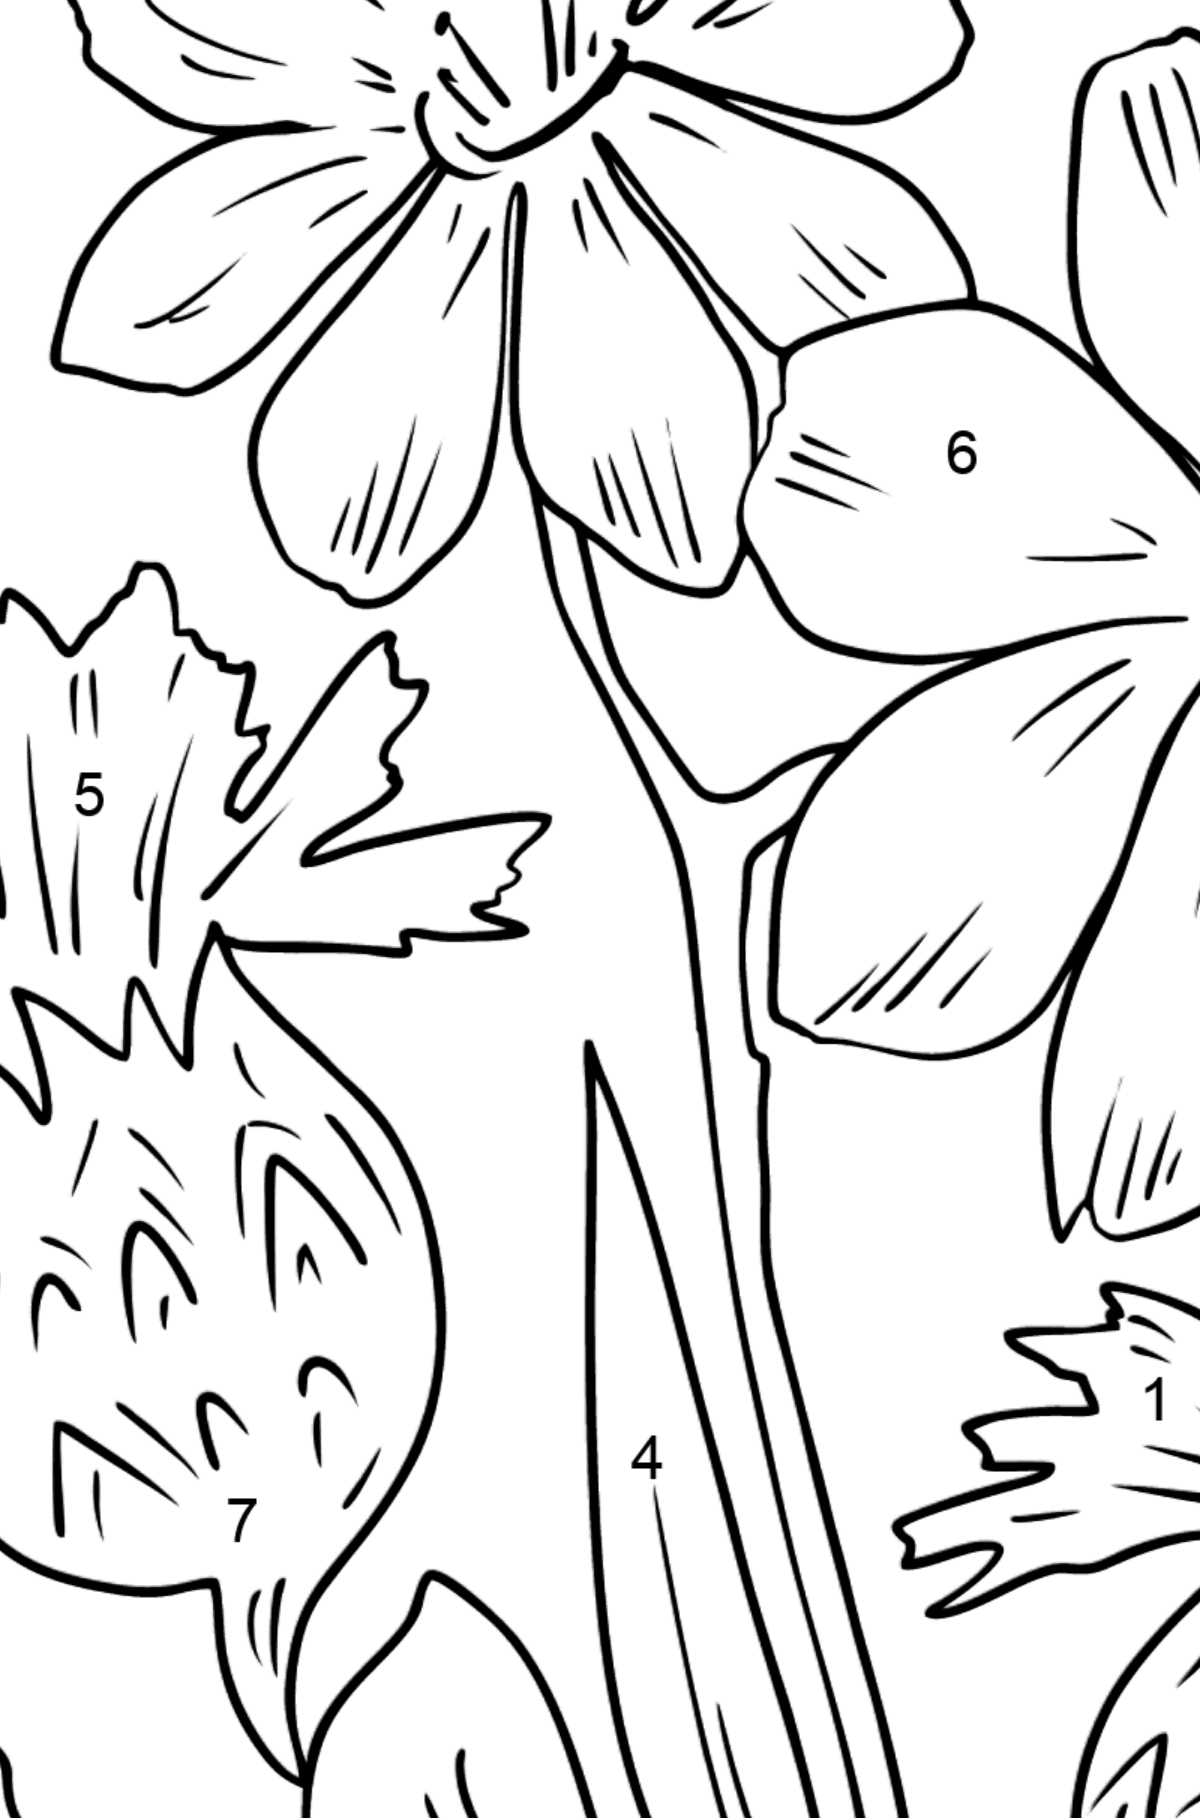 Flower Coloring Page - flowers in the meadow - Coloring by Numbers for Kids